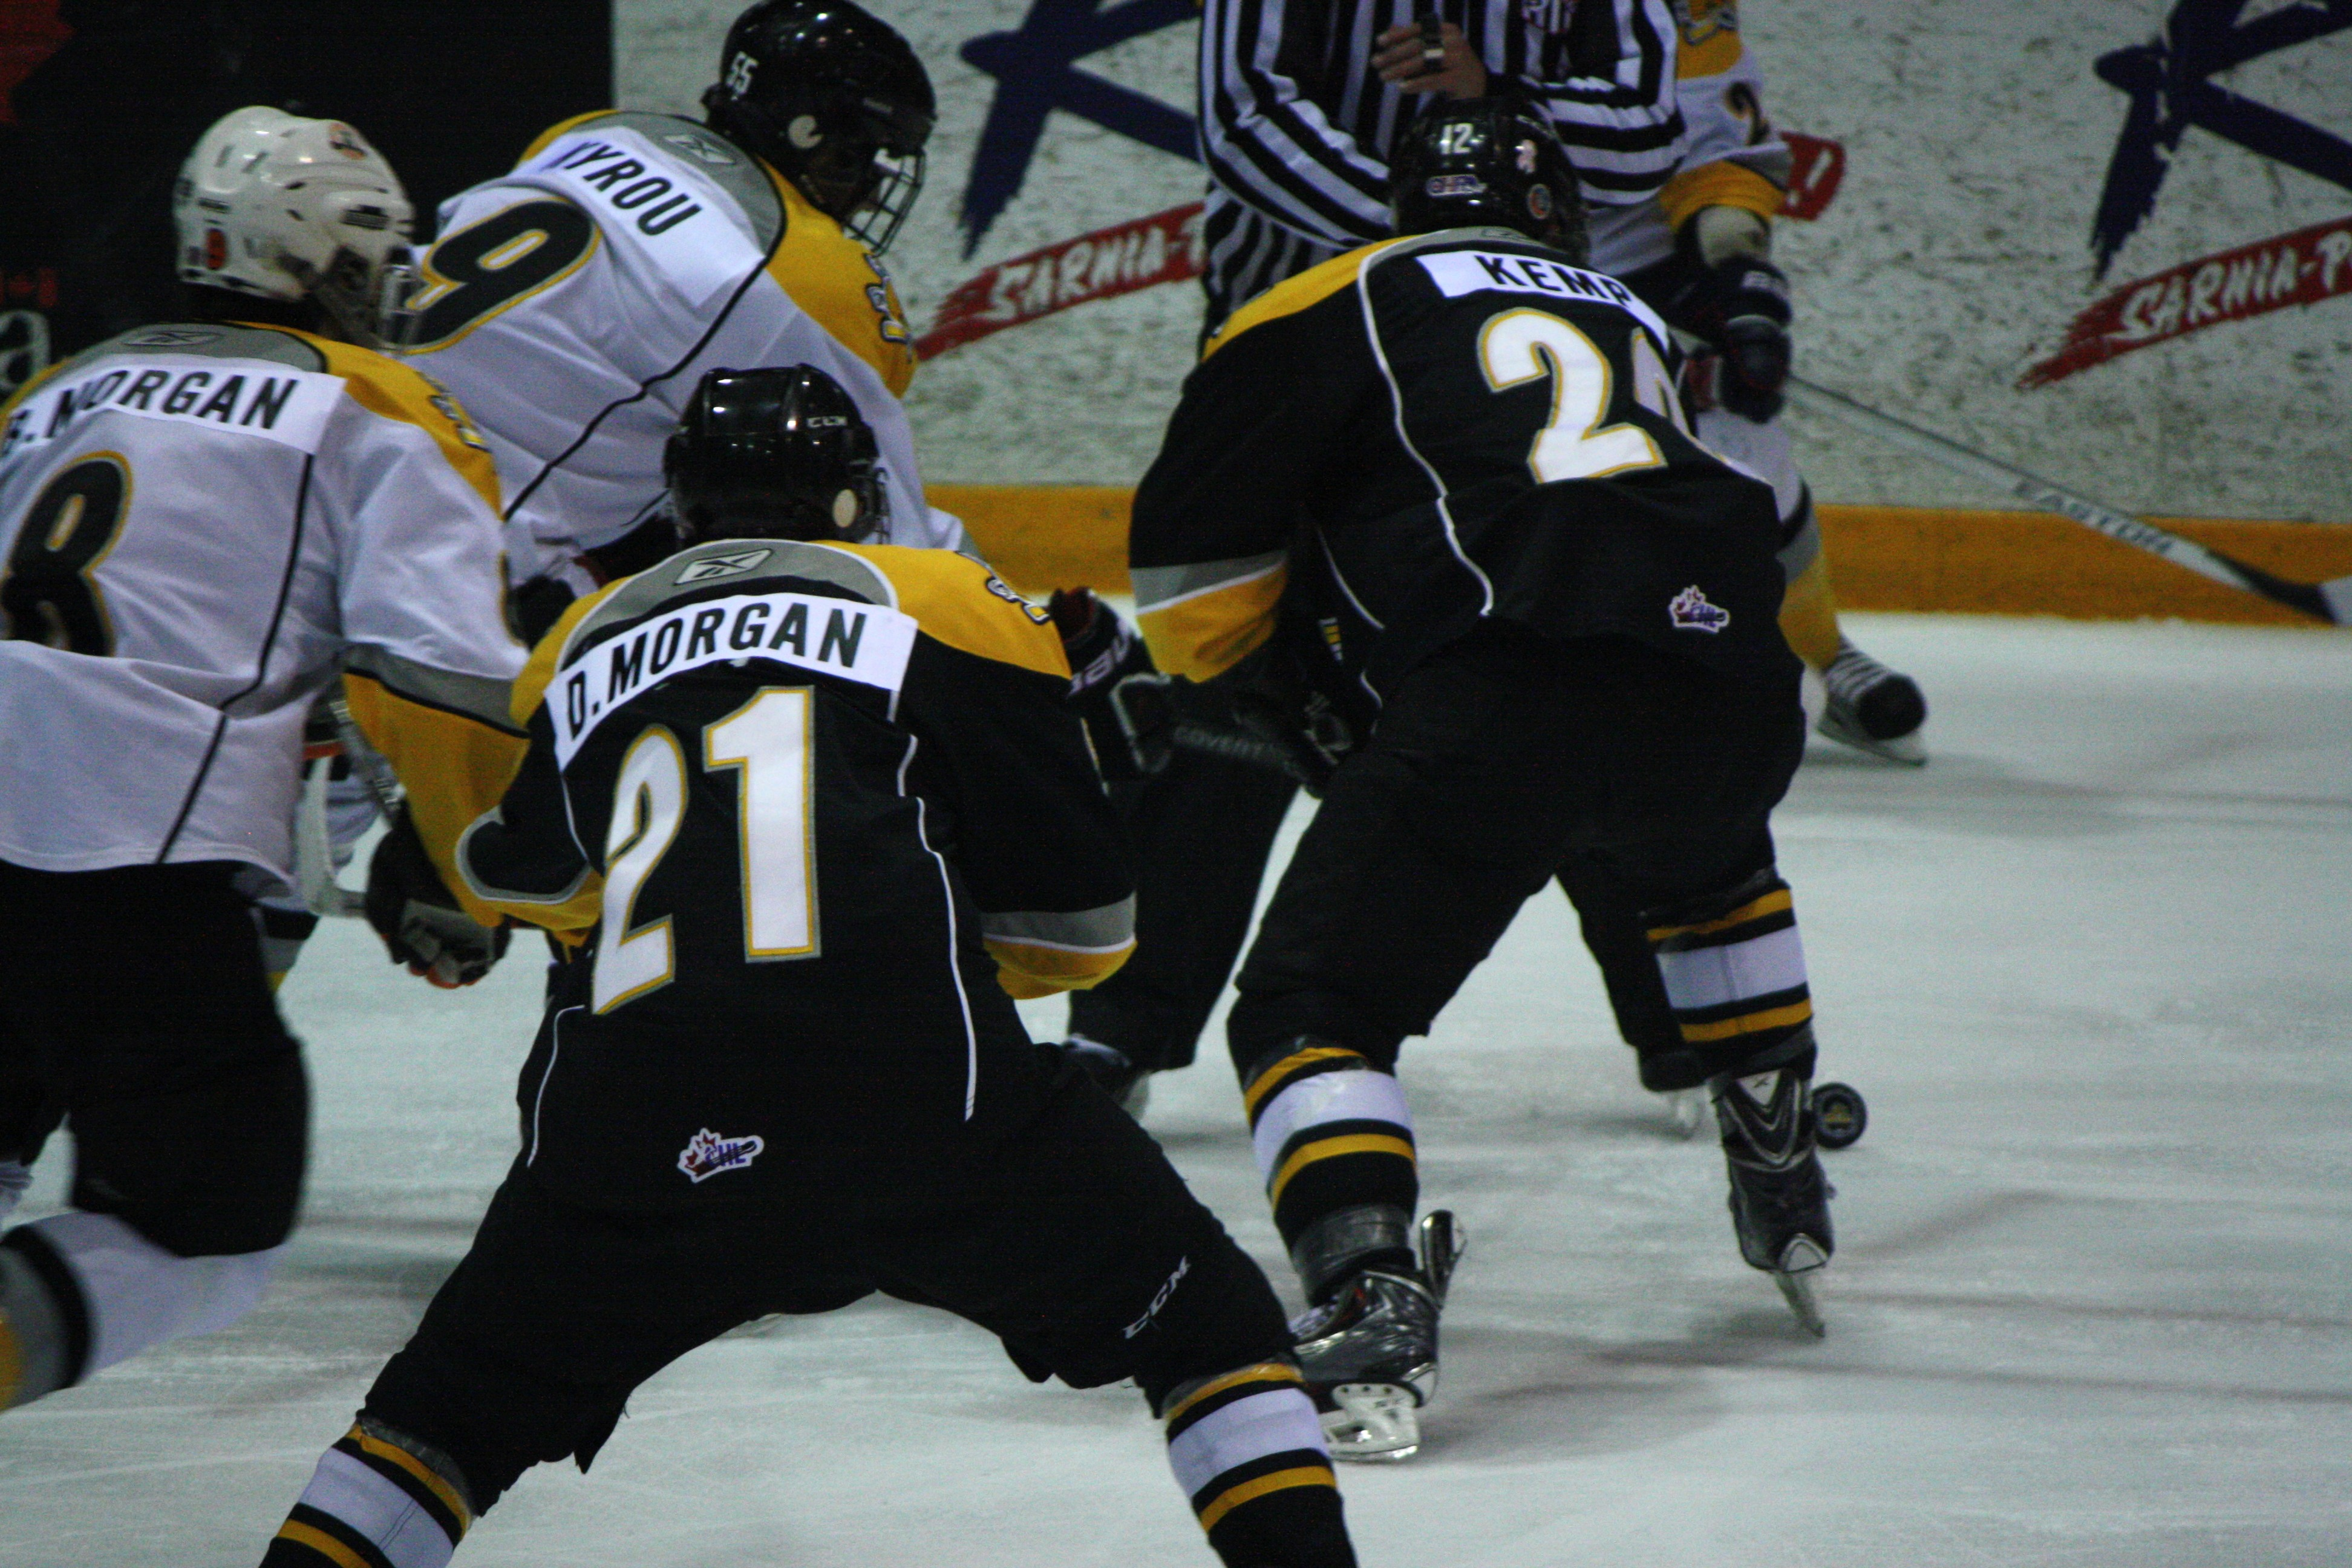 Sting prospects face off at Orientation Camp June 7, 2014 (photo by Dave Dentinger)